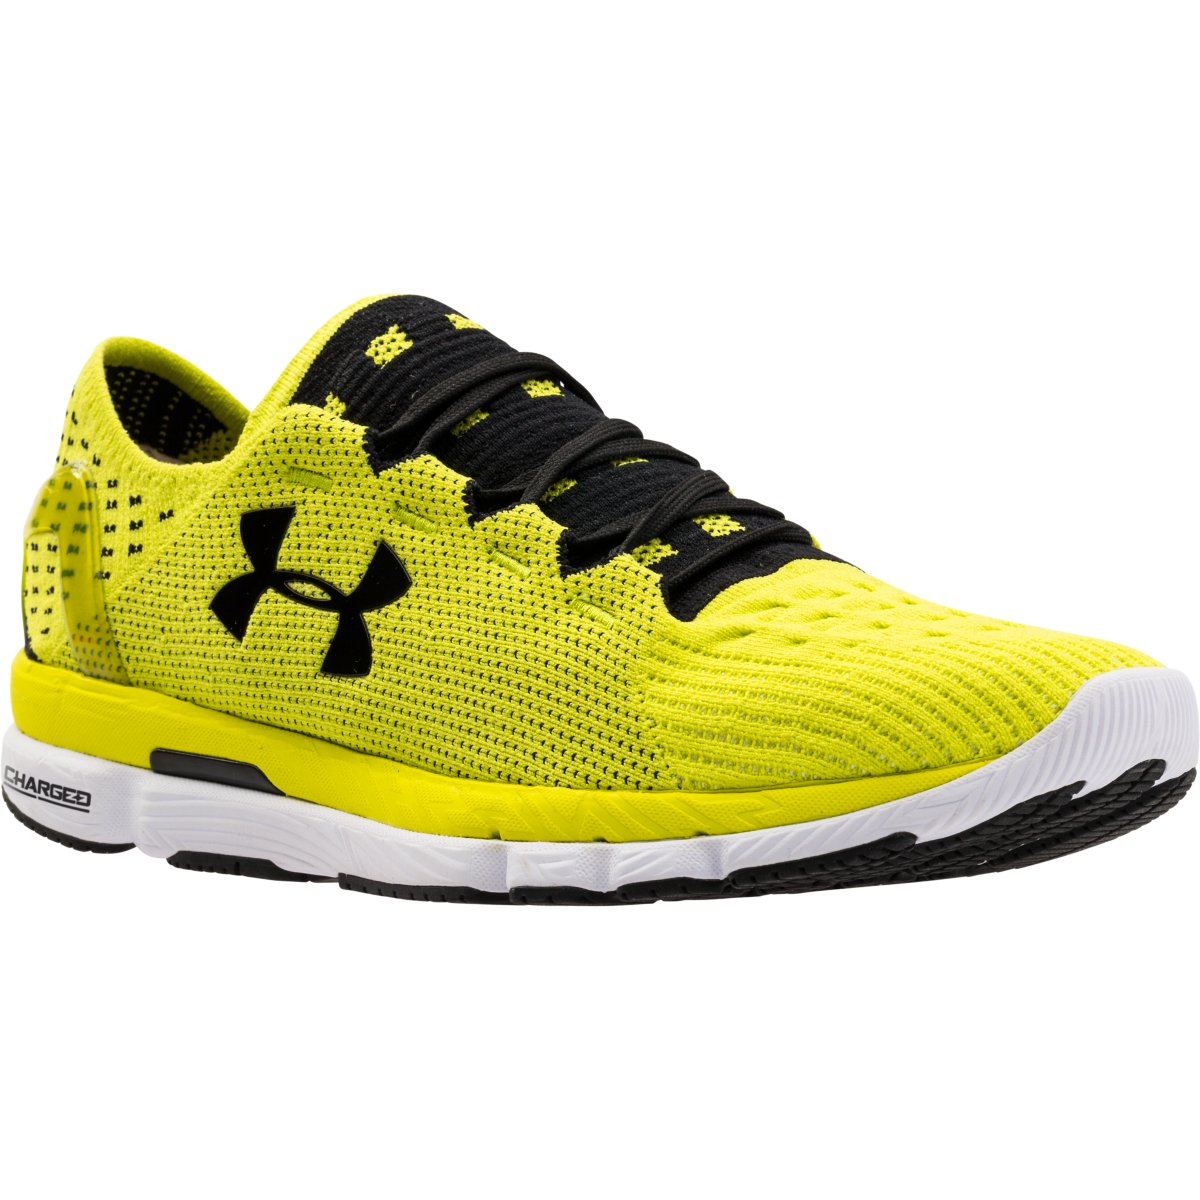 buy cheap under armour trainers under armour girls cleats shoes sale. Black Bedroom Furniture Sets. Home Design Ideas